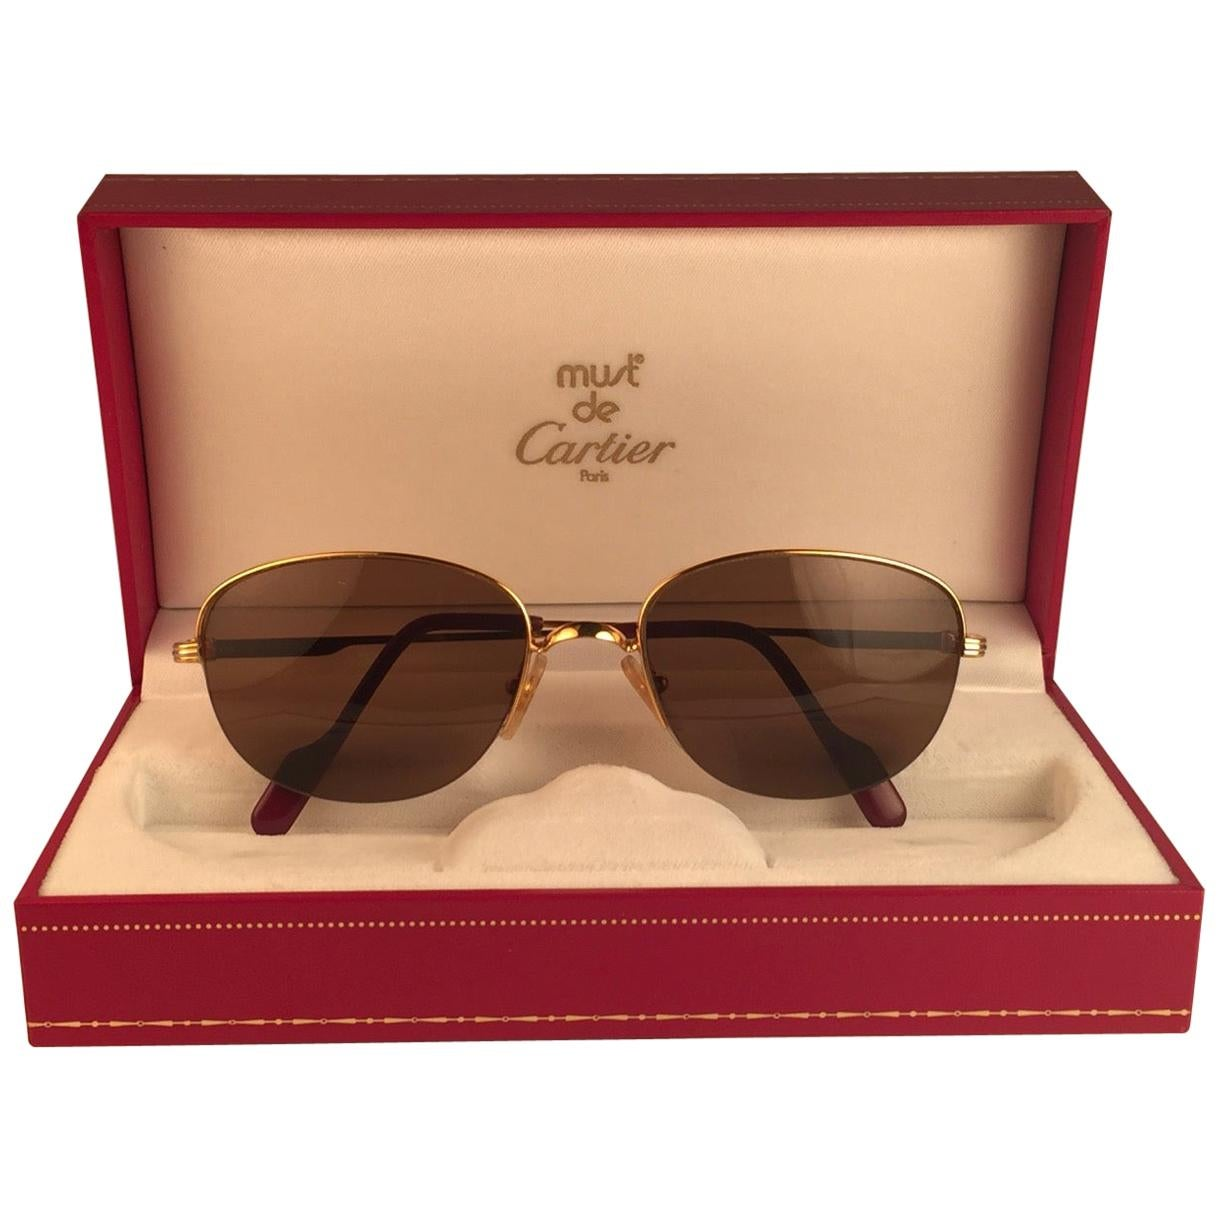 Cartier Montaigne Half Frame 55mm Sunglasses 18k Gold Sunglasses France